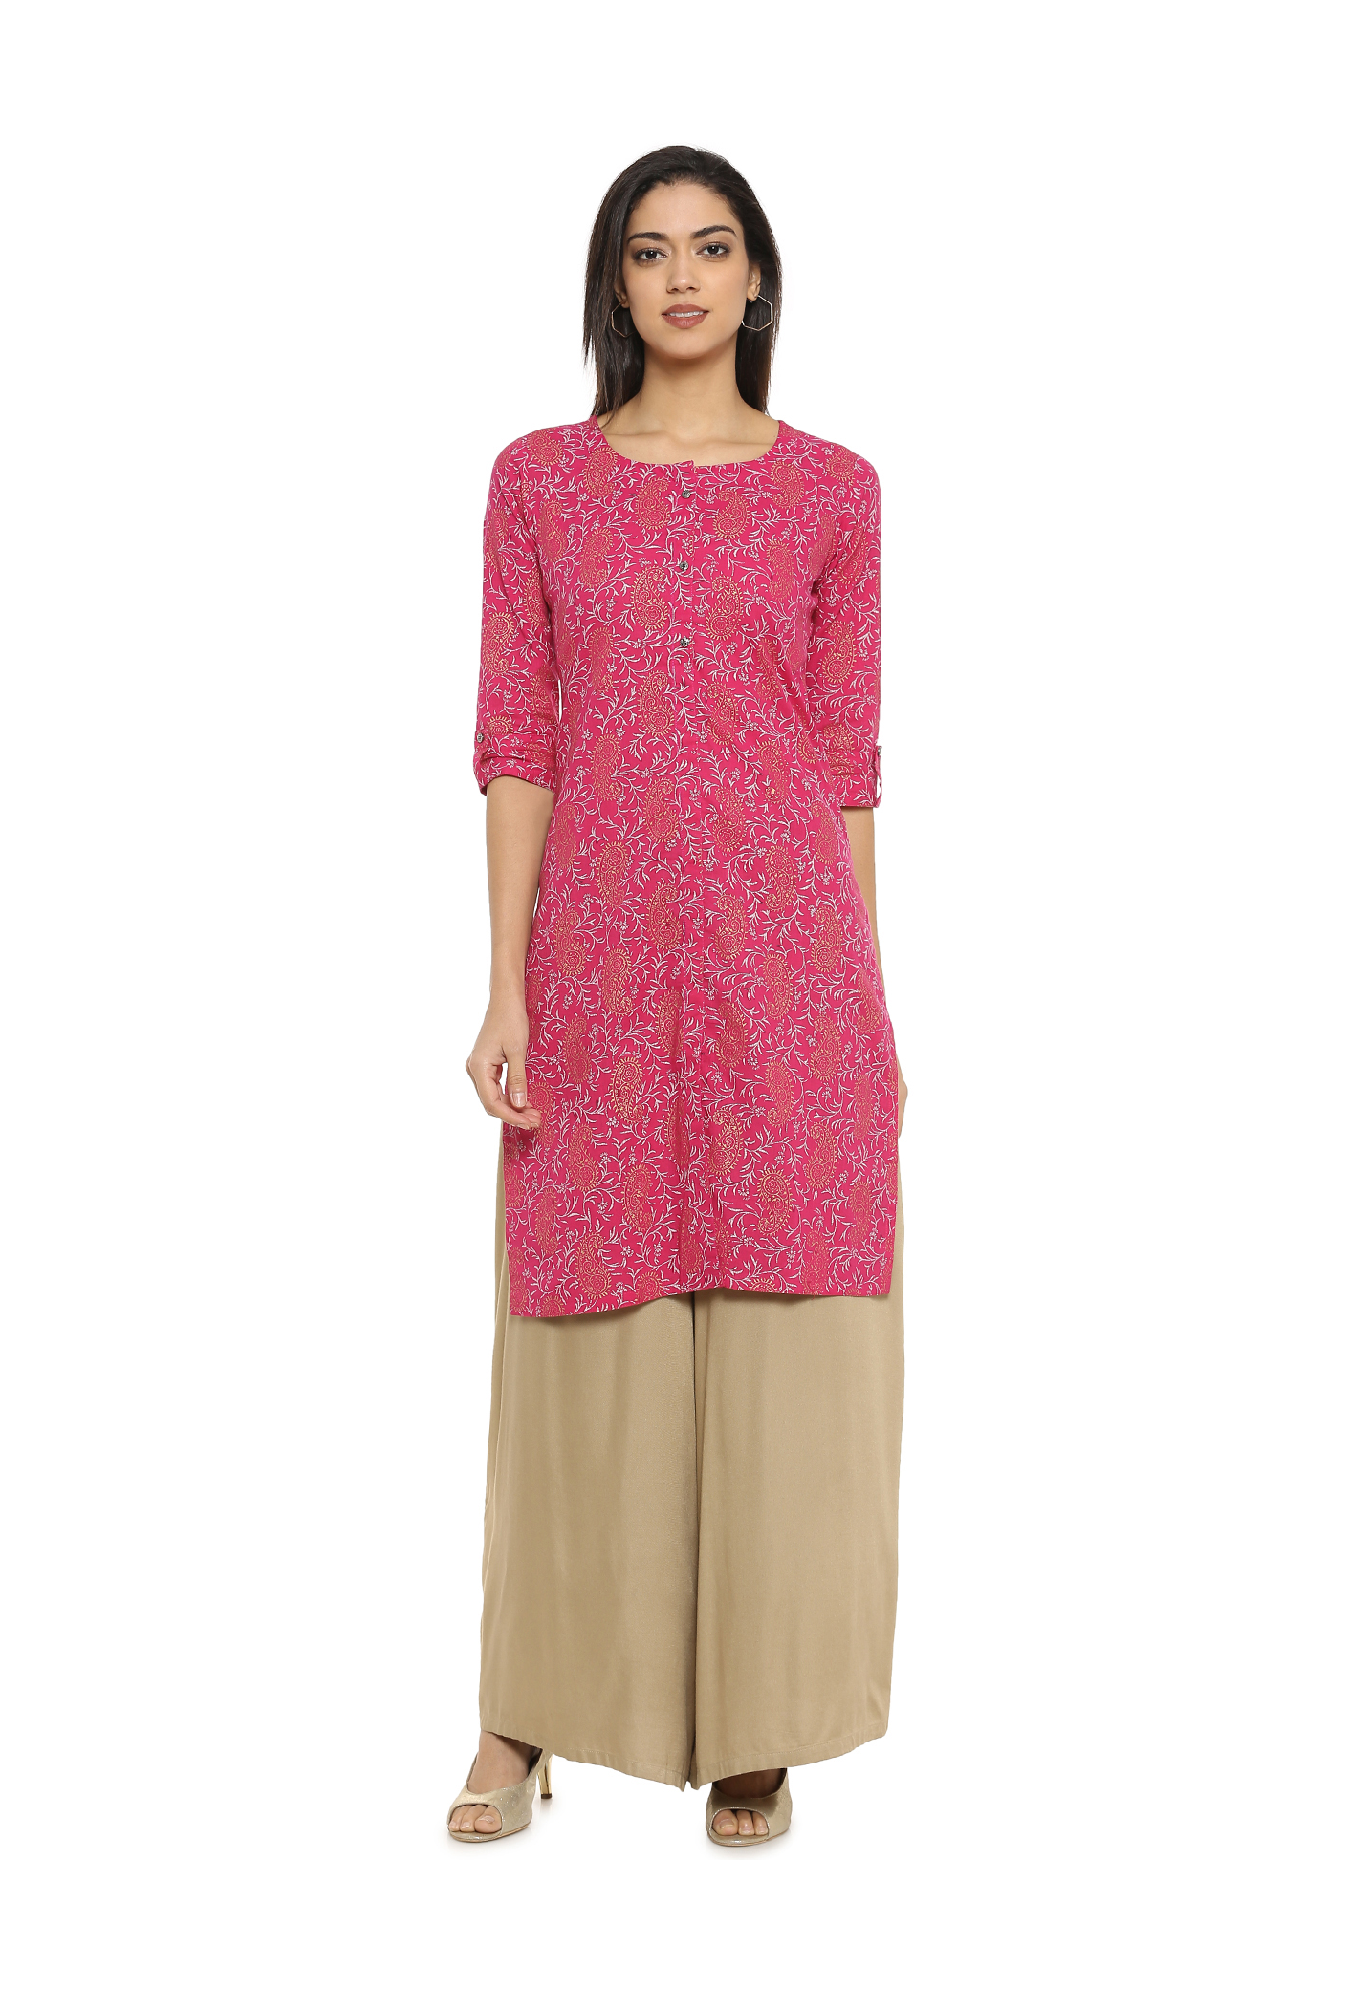 fc77cd1b5a Soch Pink Printed Cotton Kurta - | 498.00 | Ethnic Wear For Women ...